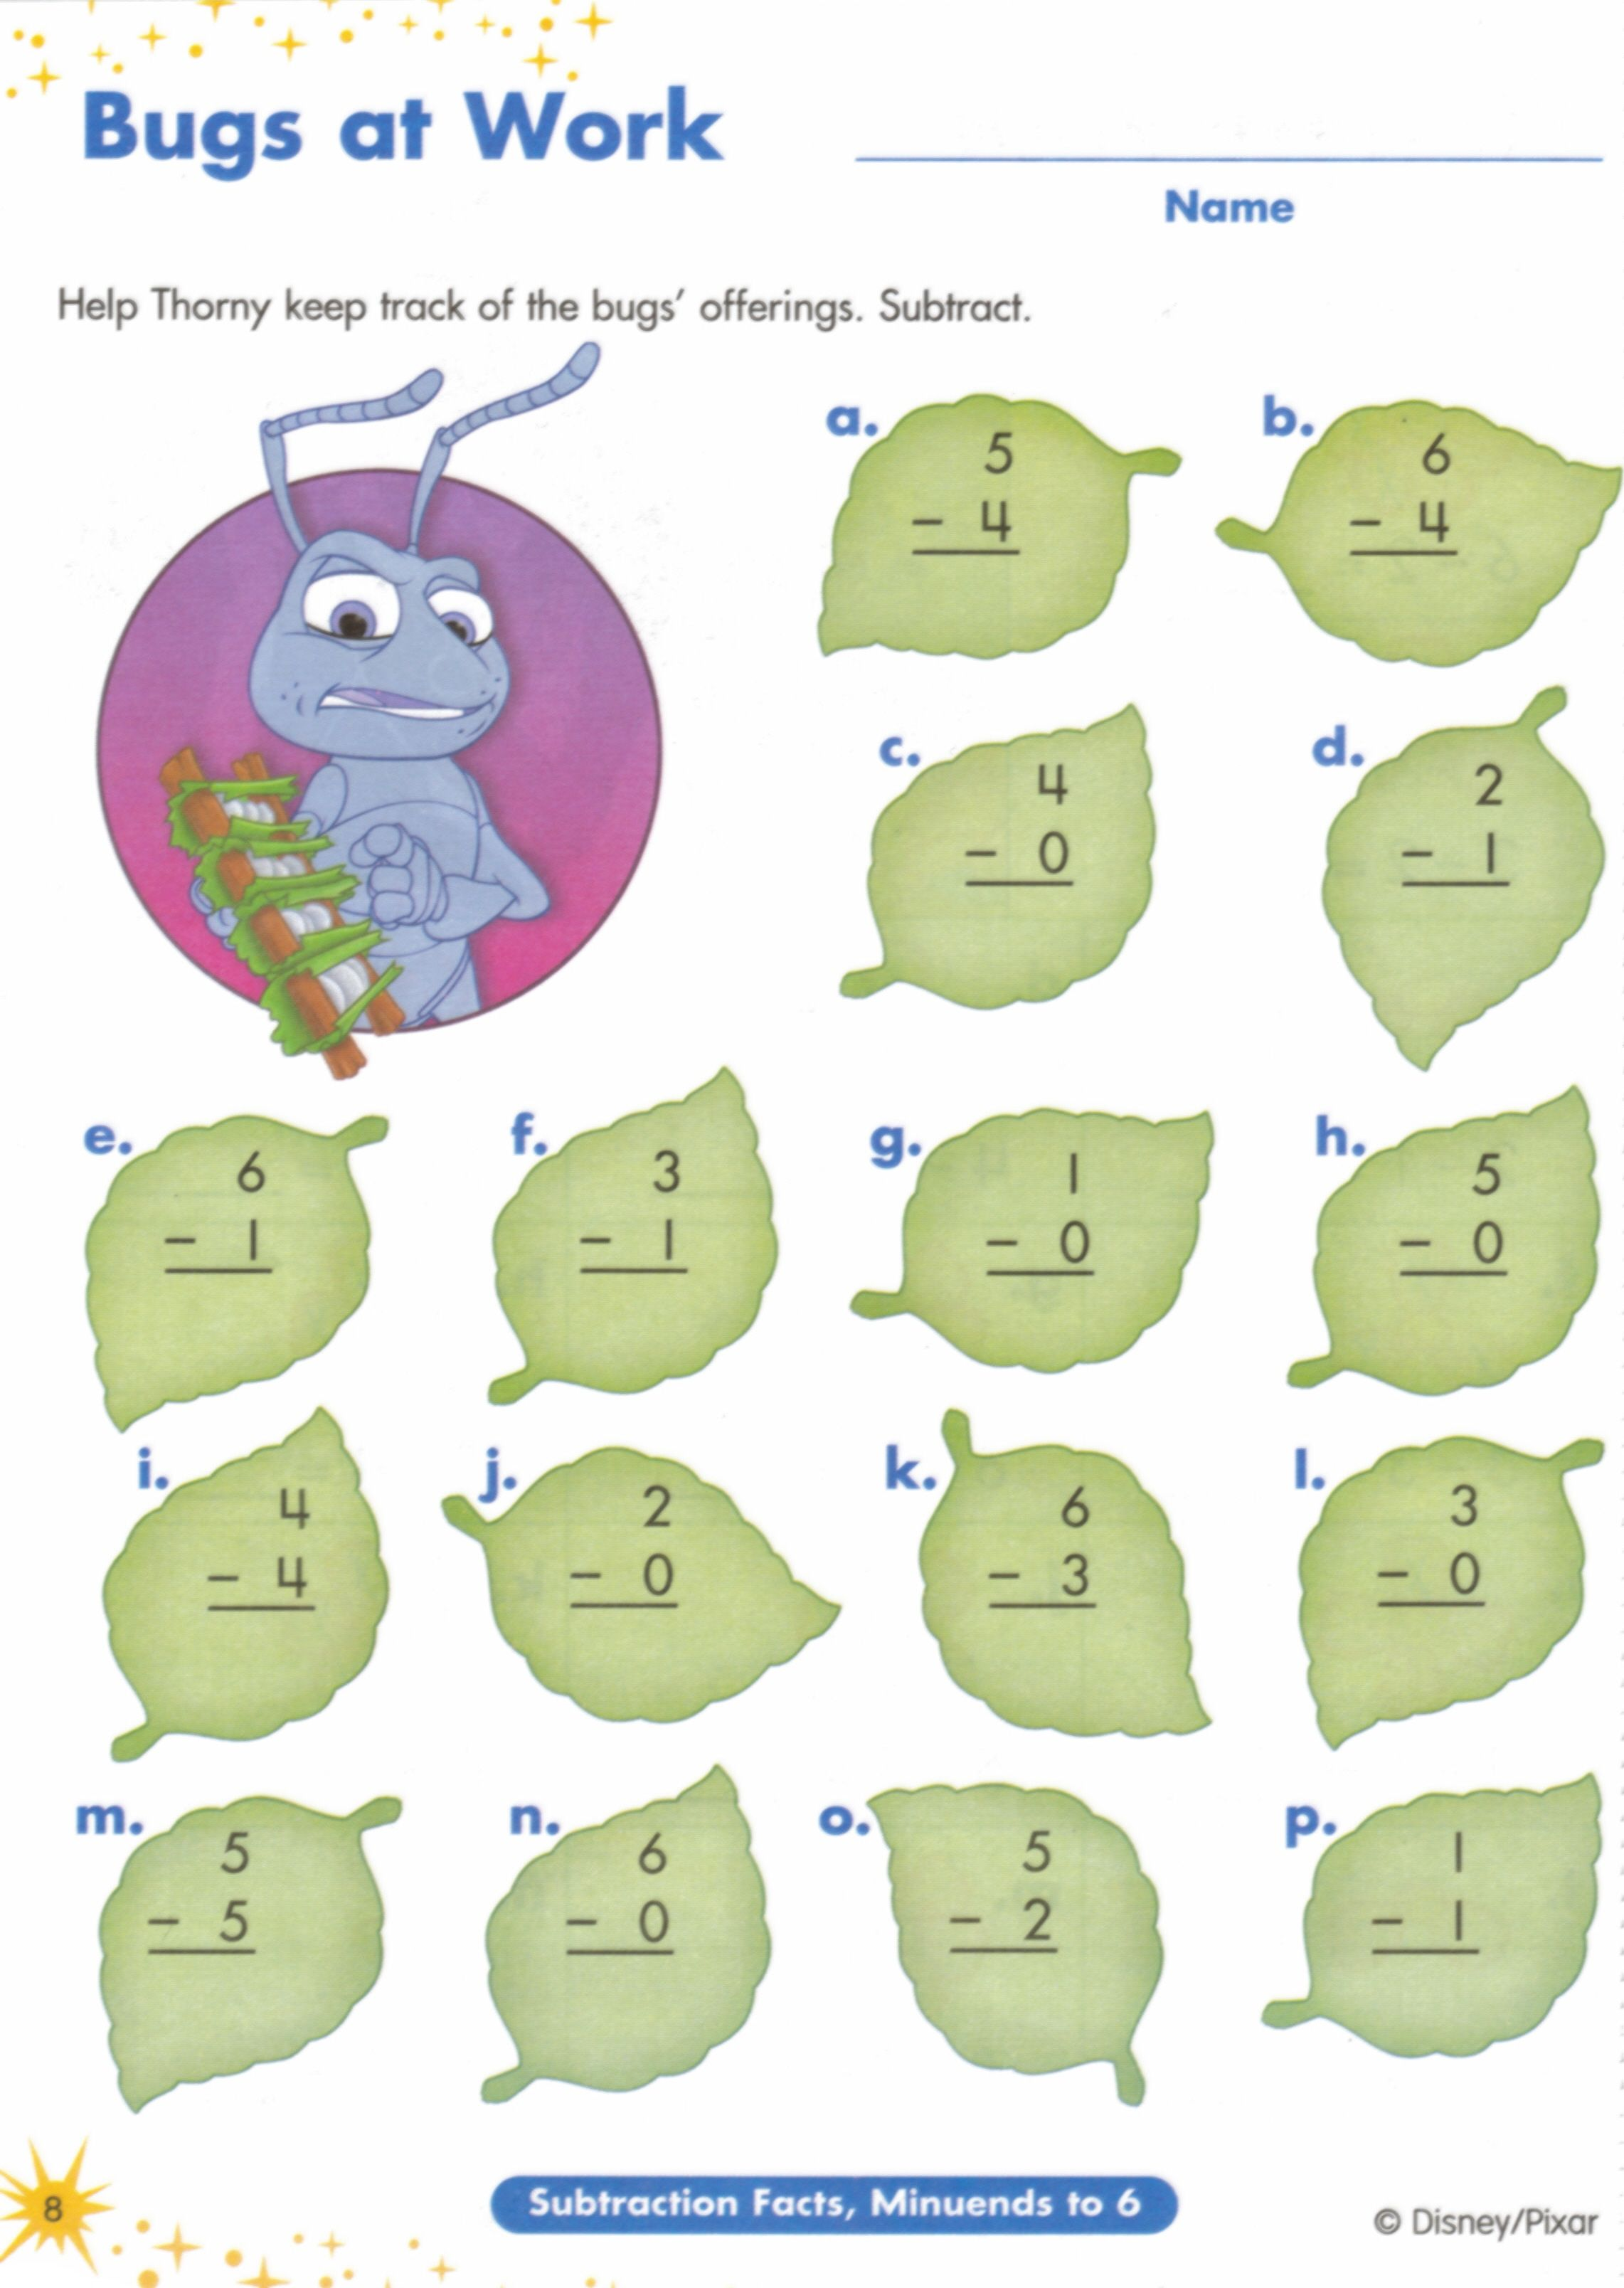 Proatmealus  Pretty  Images About Worksheets On Pinterest  Fun Facts For Kids  With Foxy  Images About Worksheets On Pinterest  Fun Facts For Kids Earth Day Worksheets And Jungles With Archaic Dr Seuss Birthday Worksheets Also Tenths And Hundredths Worksheets Grade  In Addition Computer Hardware Worksheet And Mystery Math Worksheets As Well As Law Of Sines And Cosines Applications Worksheet Additionally Cain And Abel Worksheets From Pinterestcom With Proatmealus  Foxy  Images About Worksheets On Pinterest  Fun Facts For Kids  With Archaic  Images About Worksheets On Pinterest  Fun Facts For Kids Earth Day Worksheets And Jungles And Pretty Dr Seuss Birthday Worksheets Also Tenths And Hundredths Worksheets Grade  In Addition Computer Hardware Worksheet From Pinterestcom